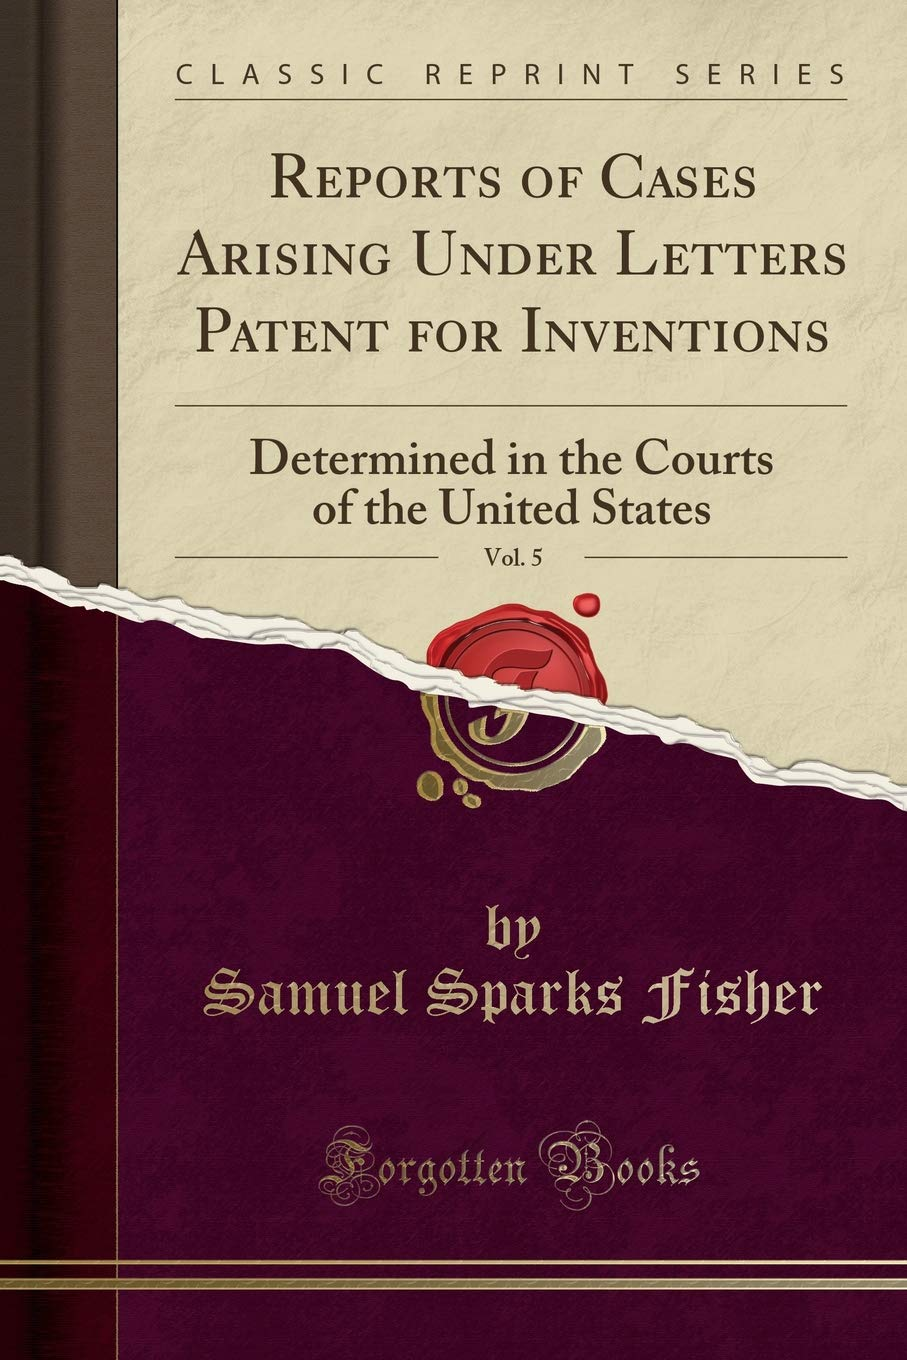 Download Reports of Cases Arising Under Letters Patent for Inventions, Vol. 5: Determined in the Courts of the United States (Classic Reprint) pdf